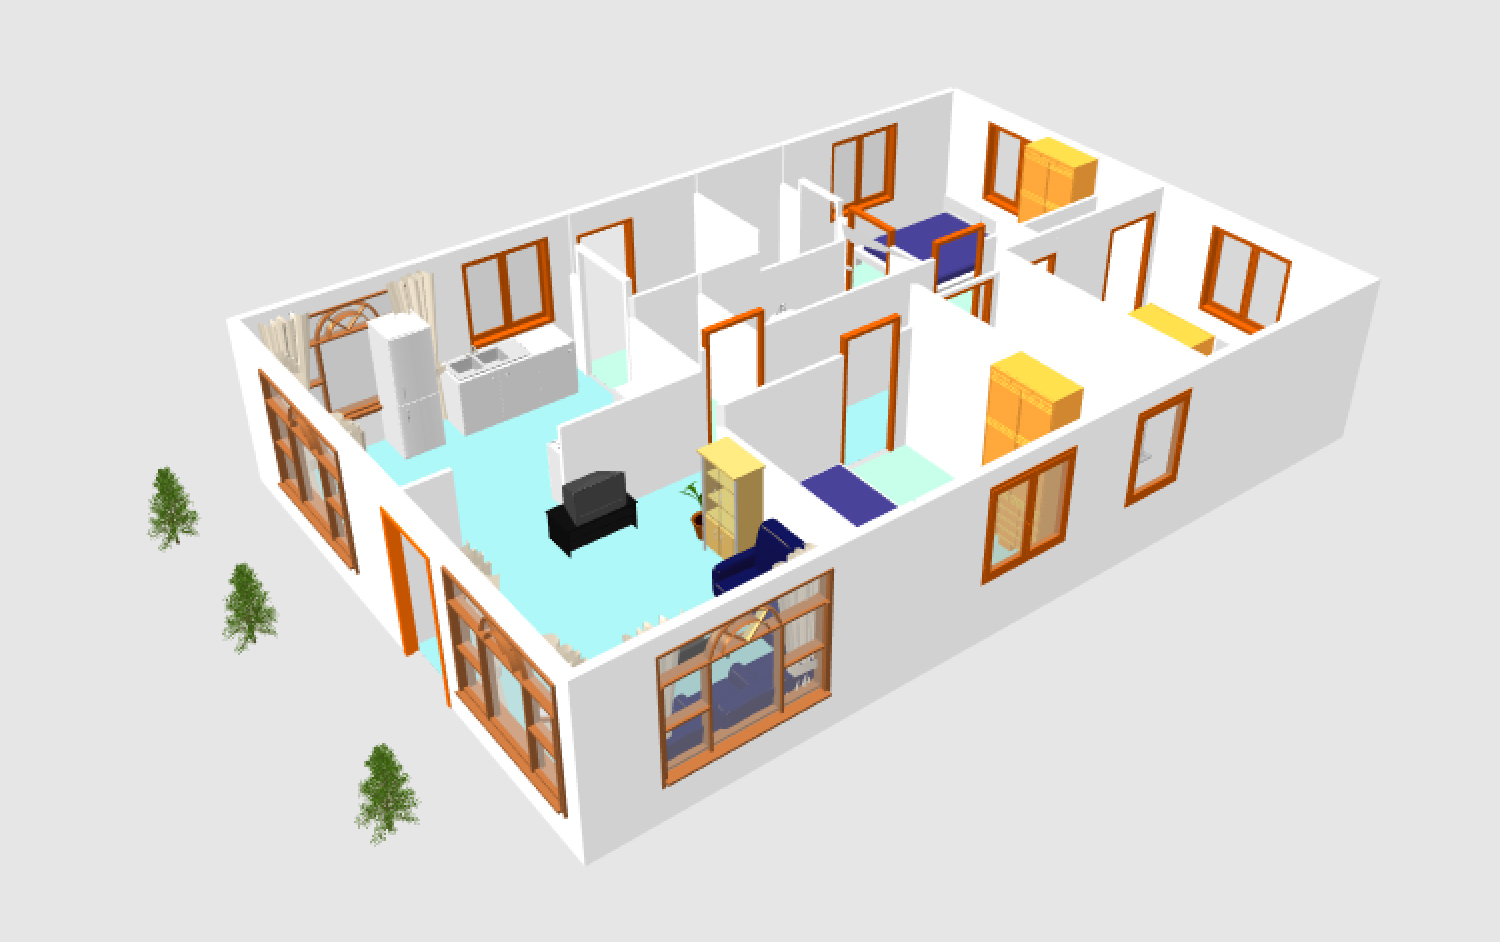 3d small house plane idea 102 free download form dwg for House images free download